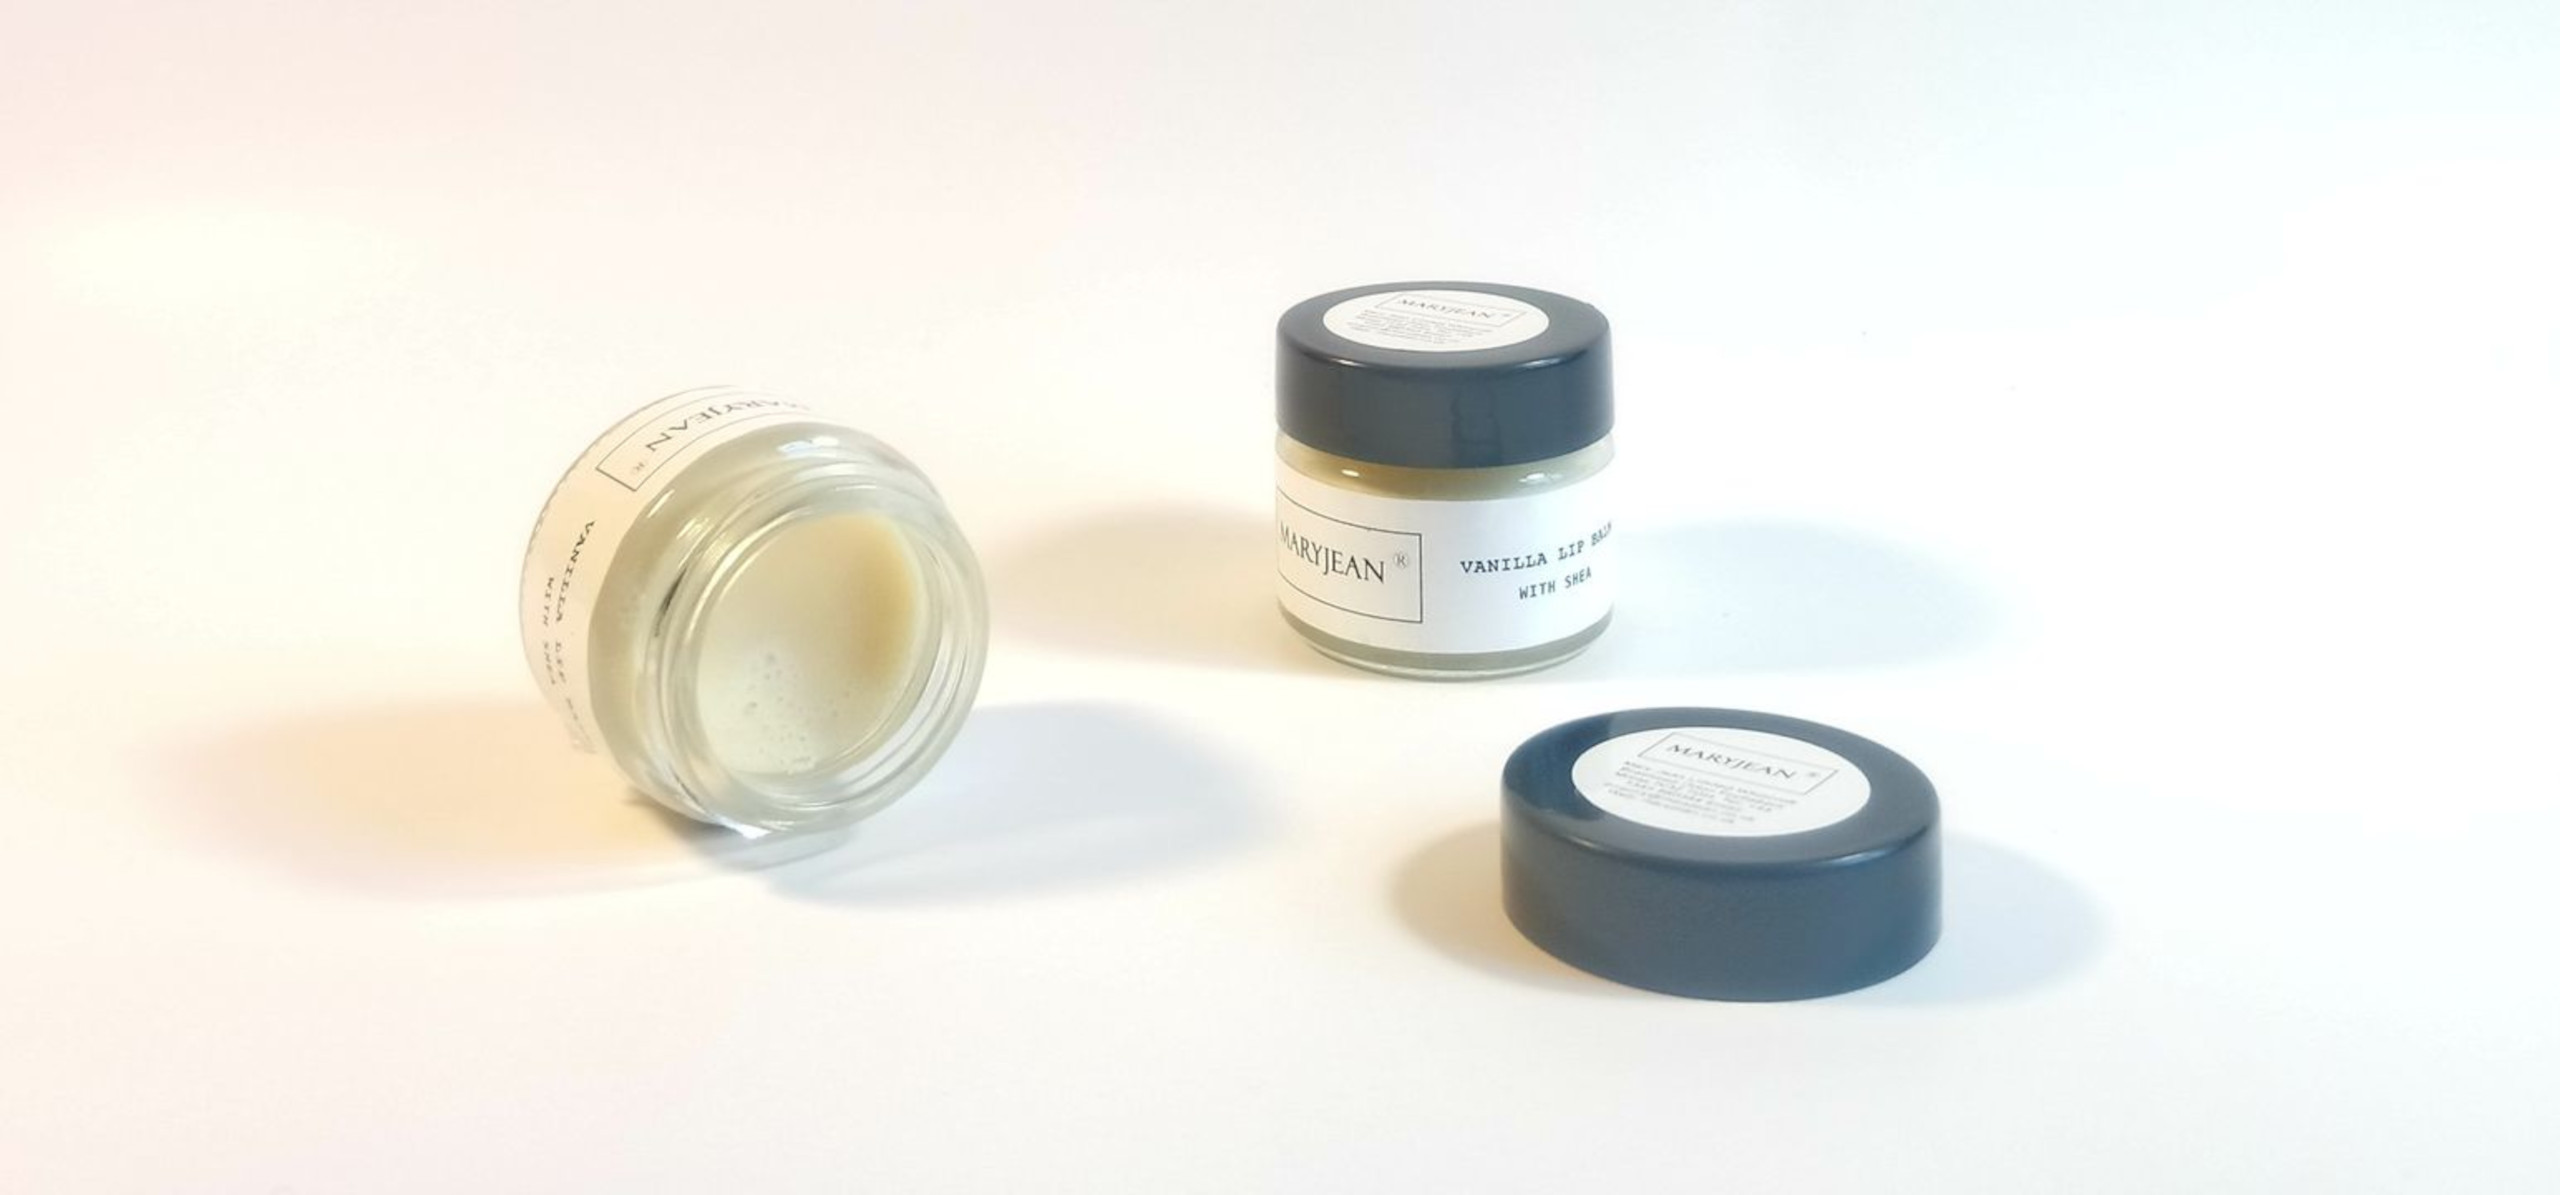 Facial Masks And Lip Balms Rich botanical oils blended to promote healthy lips you enjoy moisturisation all day long with food grade flavourings to lavish your taste buds ― get much clearer facial skin complexion with our clay masks they draw out so many impurities letting your skin breath once more